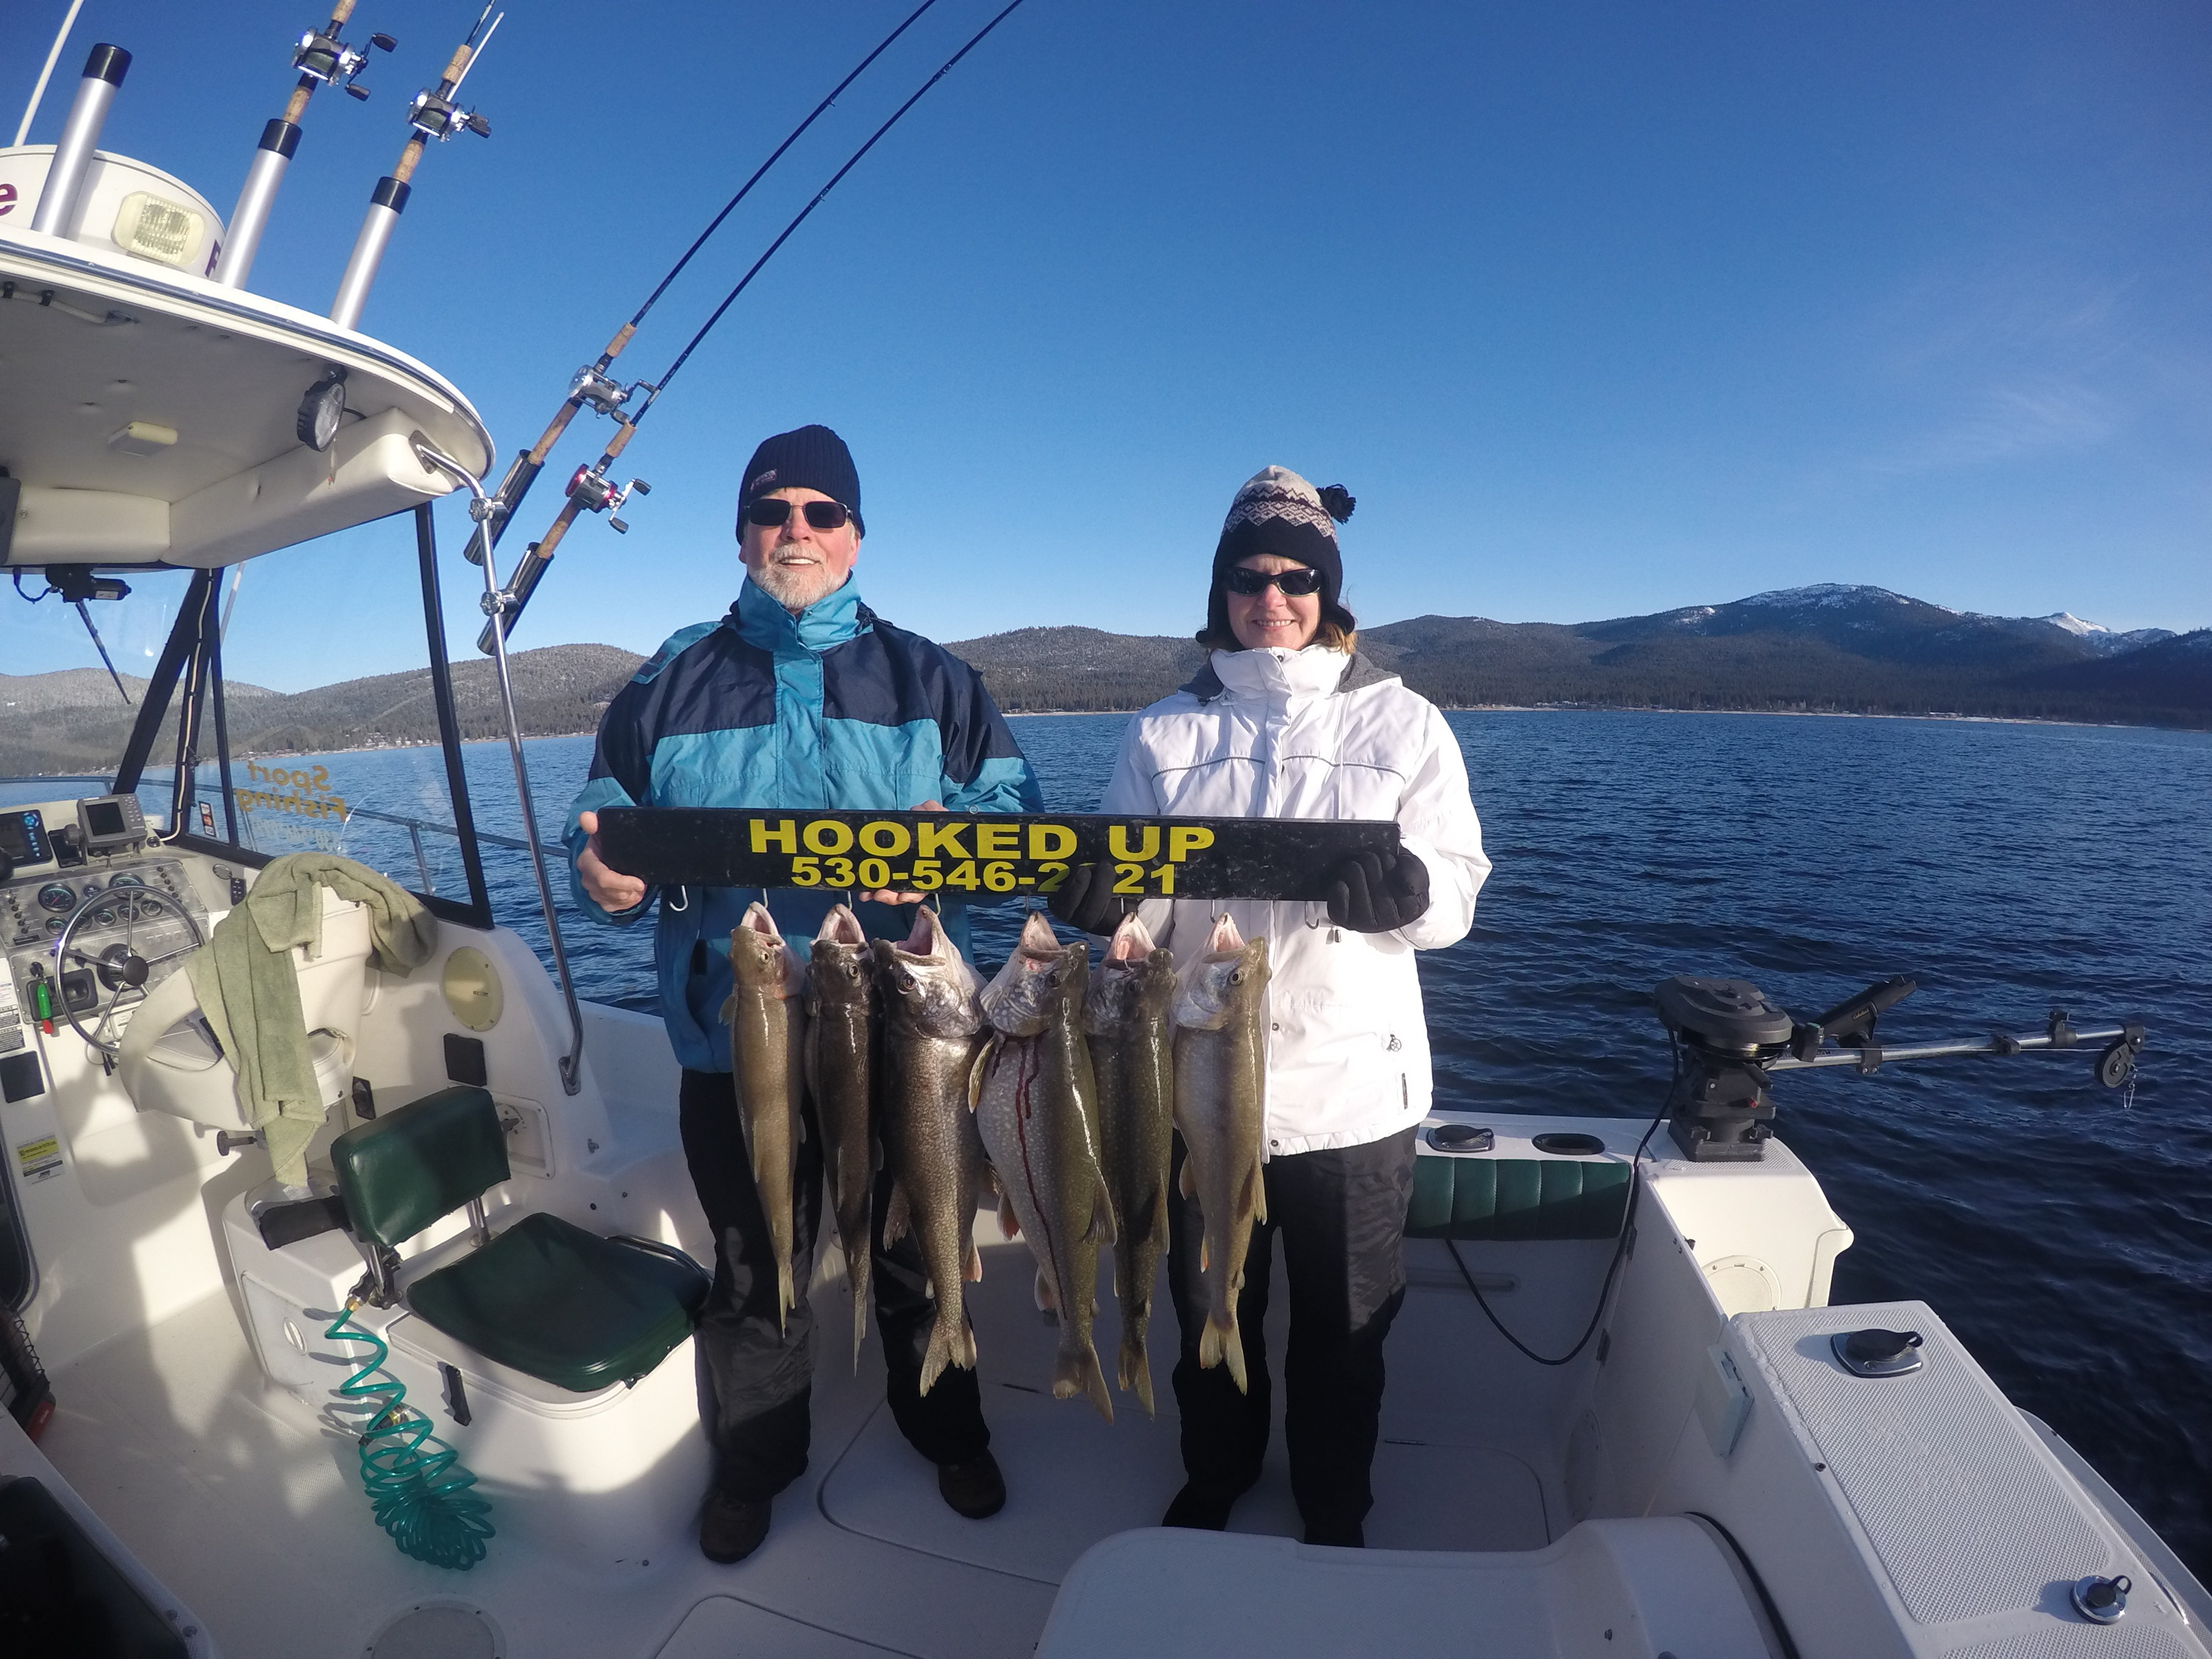 Hooked Up Sport Fishing: Fishing Lake Tahoe